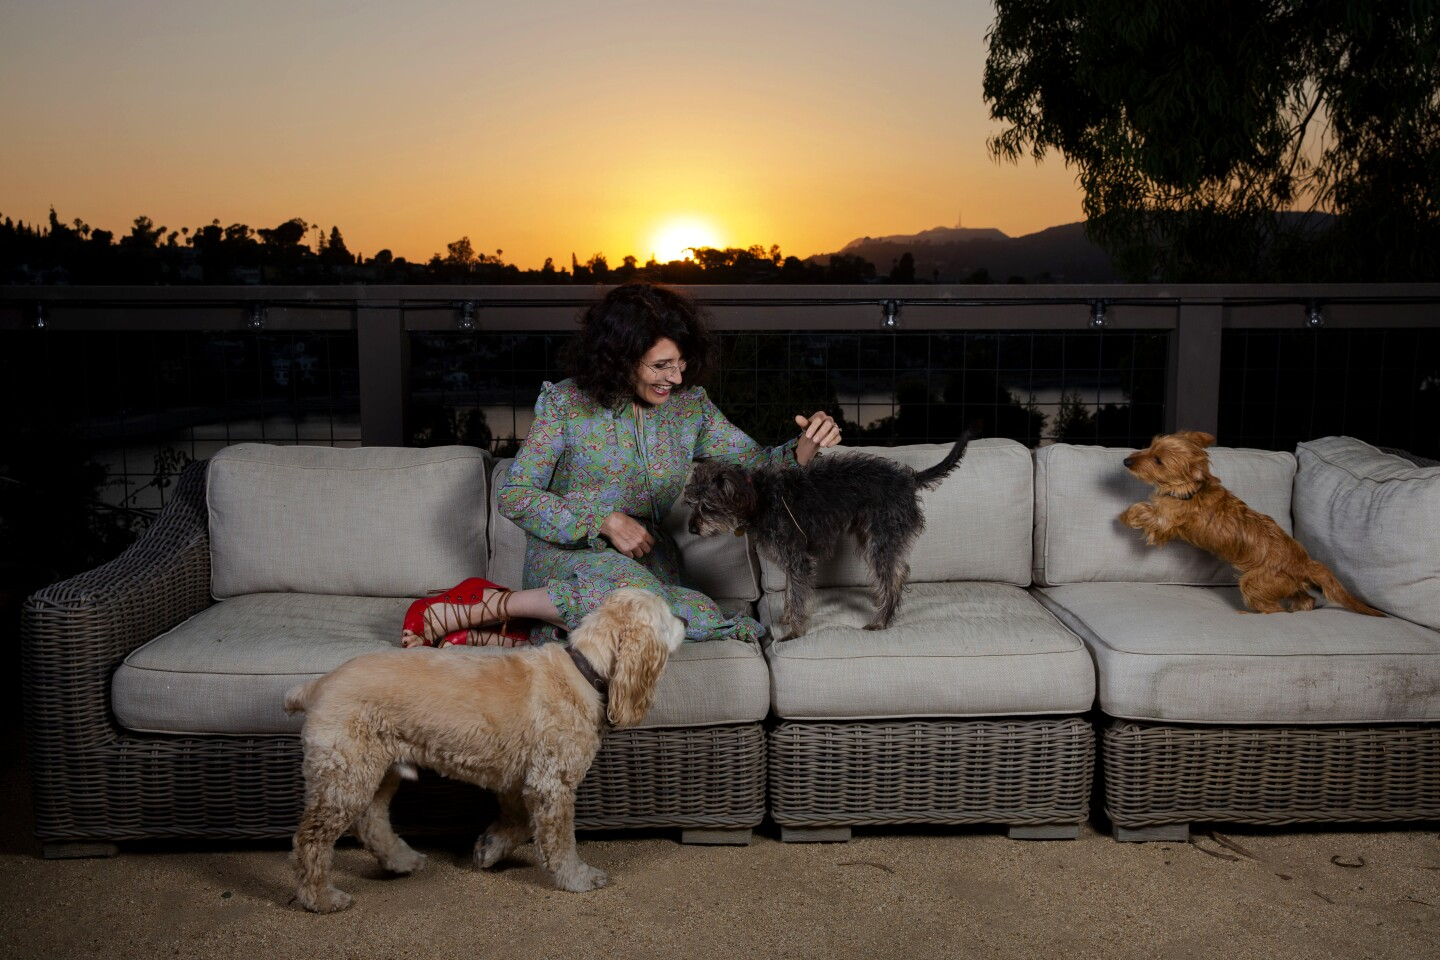 Actress Lisa Edelstein and her pets enjoy her back patio that overlooks the Silver Lake reservoir.